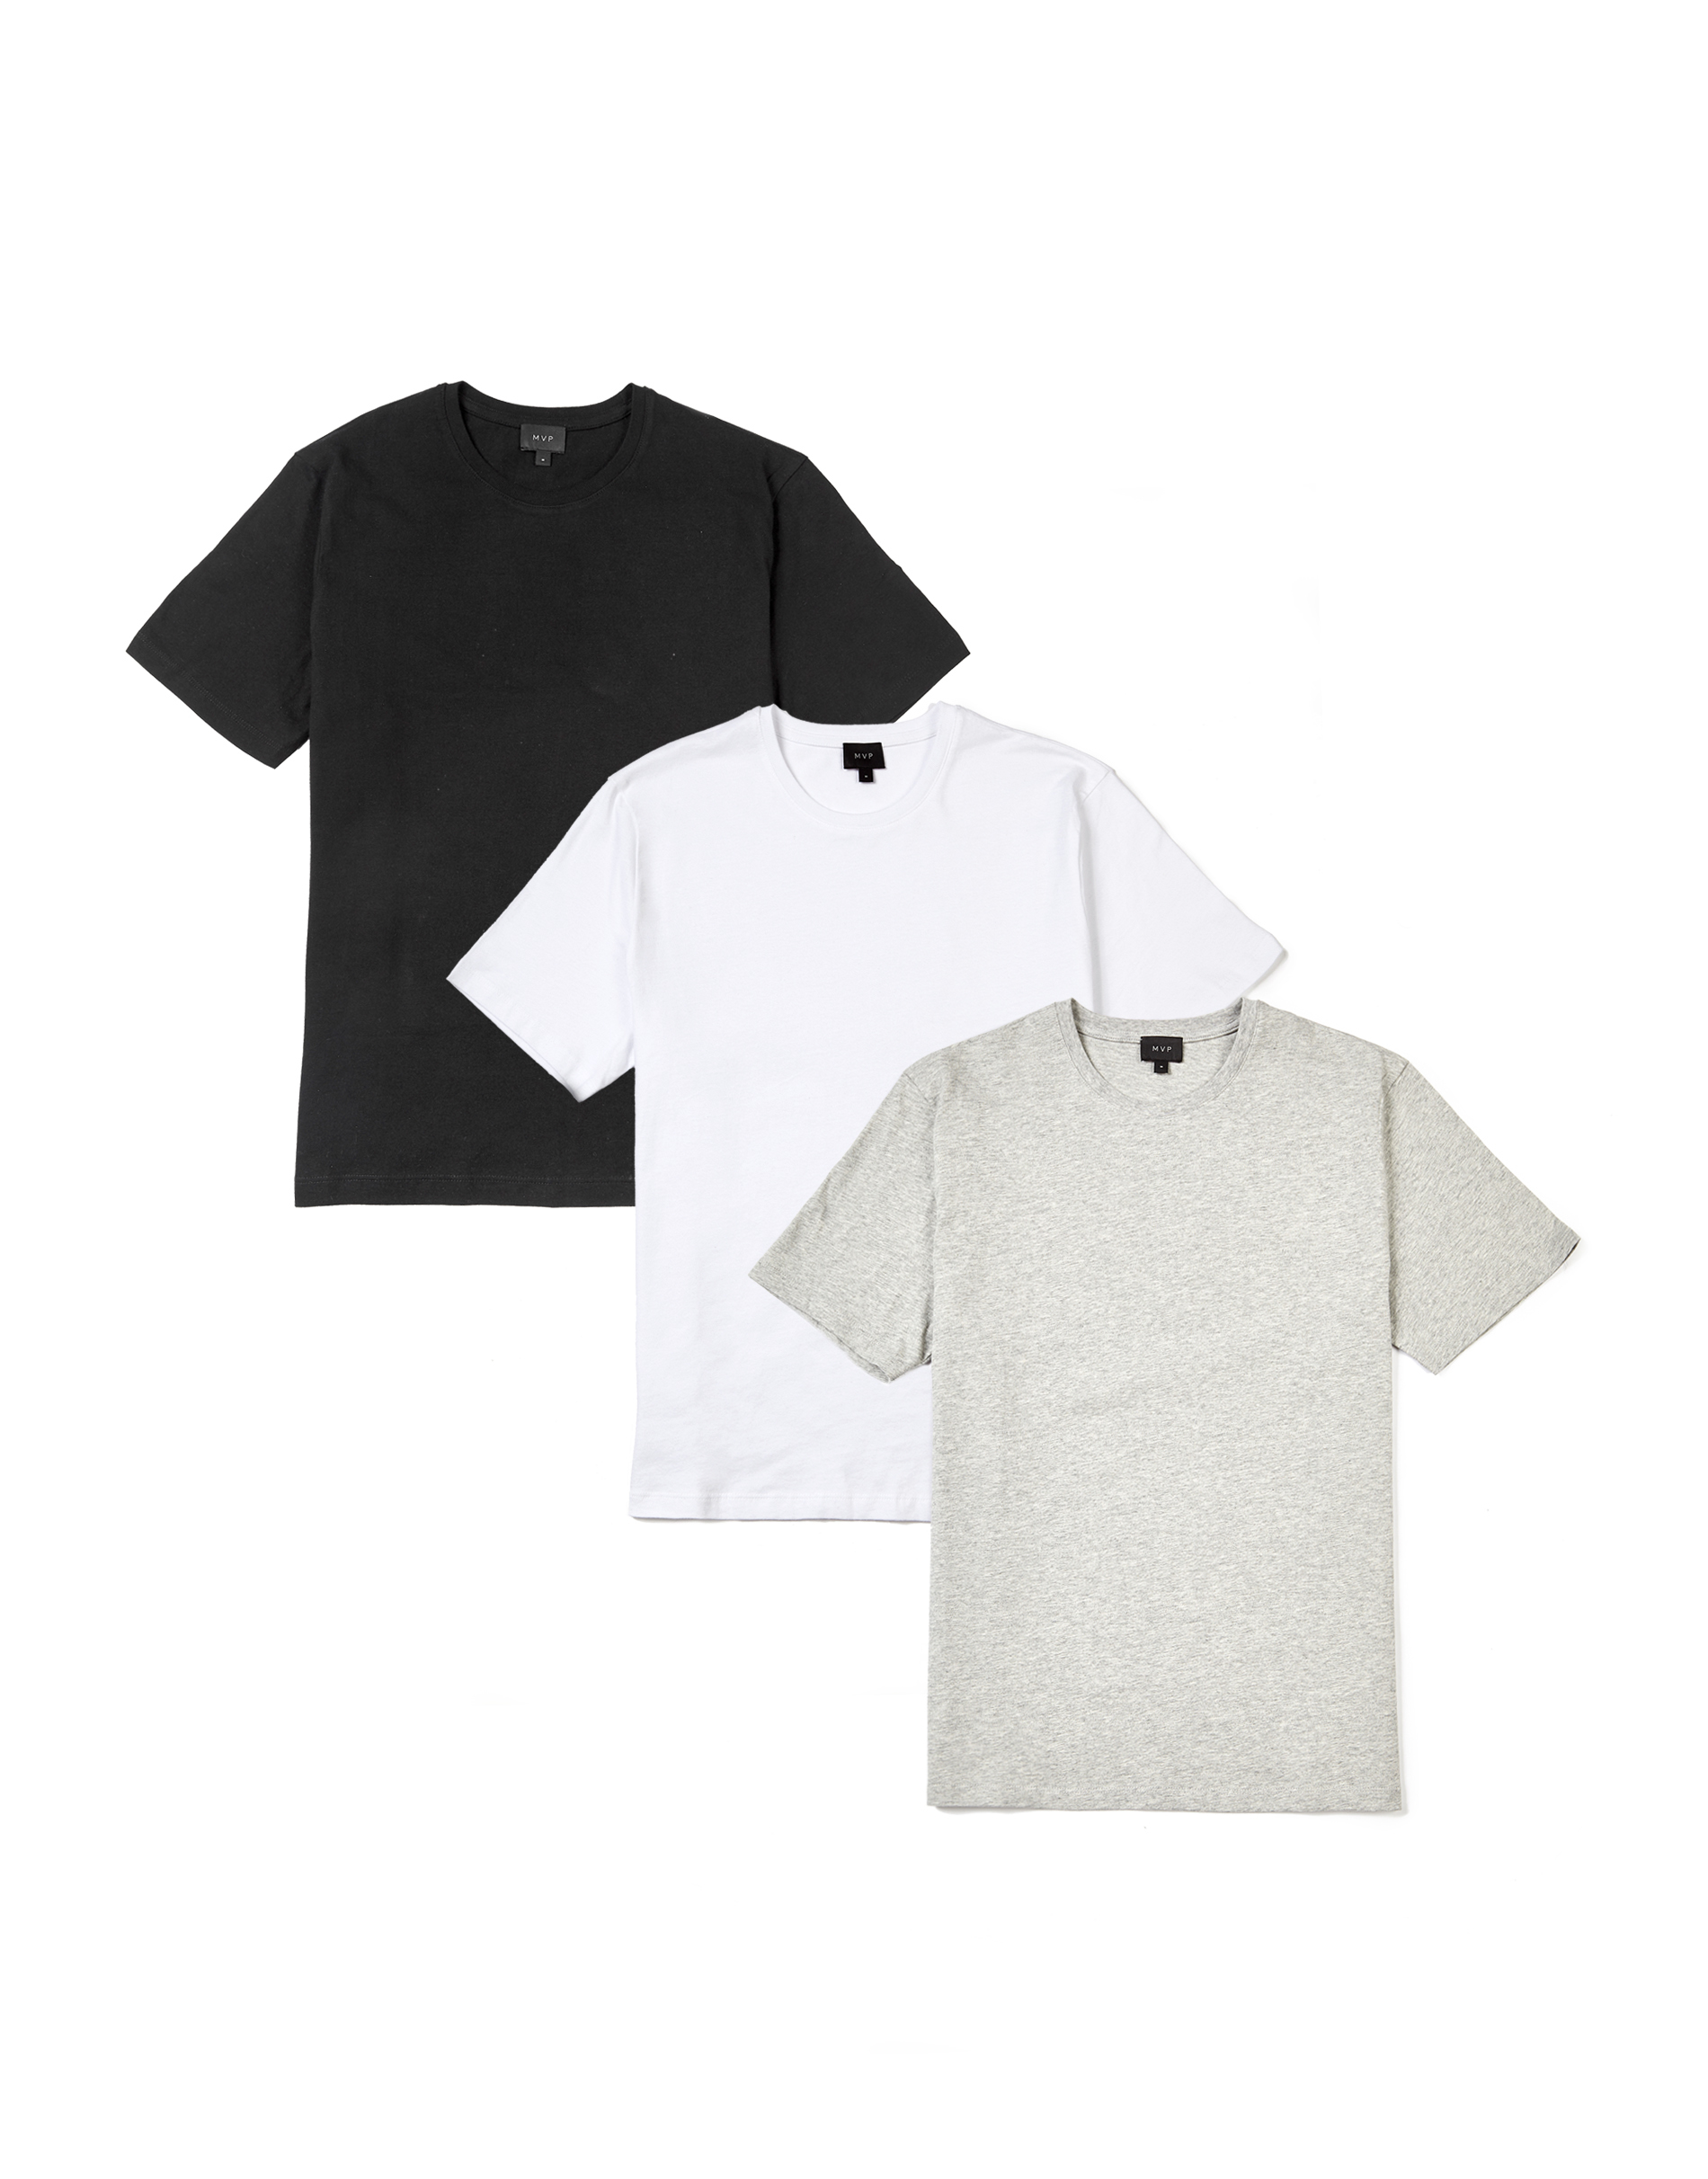 MVP WHITE + GREY MEL + BLACK 3-Pack of Ashfield Crew Neck T-shirt - White + Grey Melange + Black